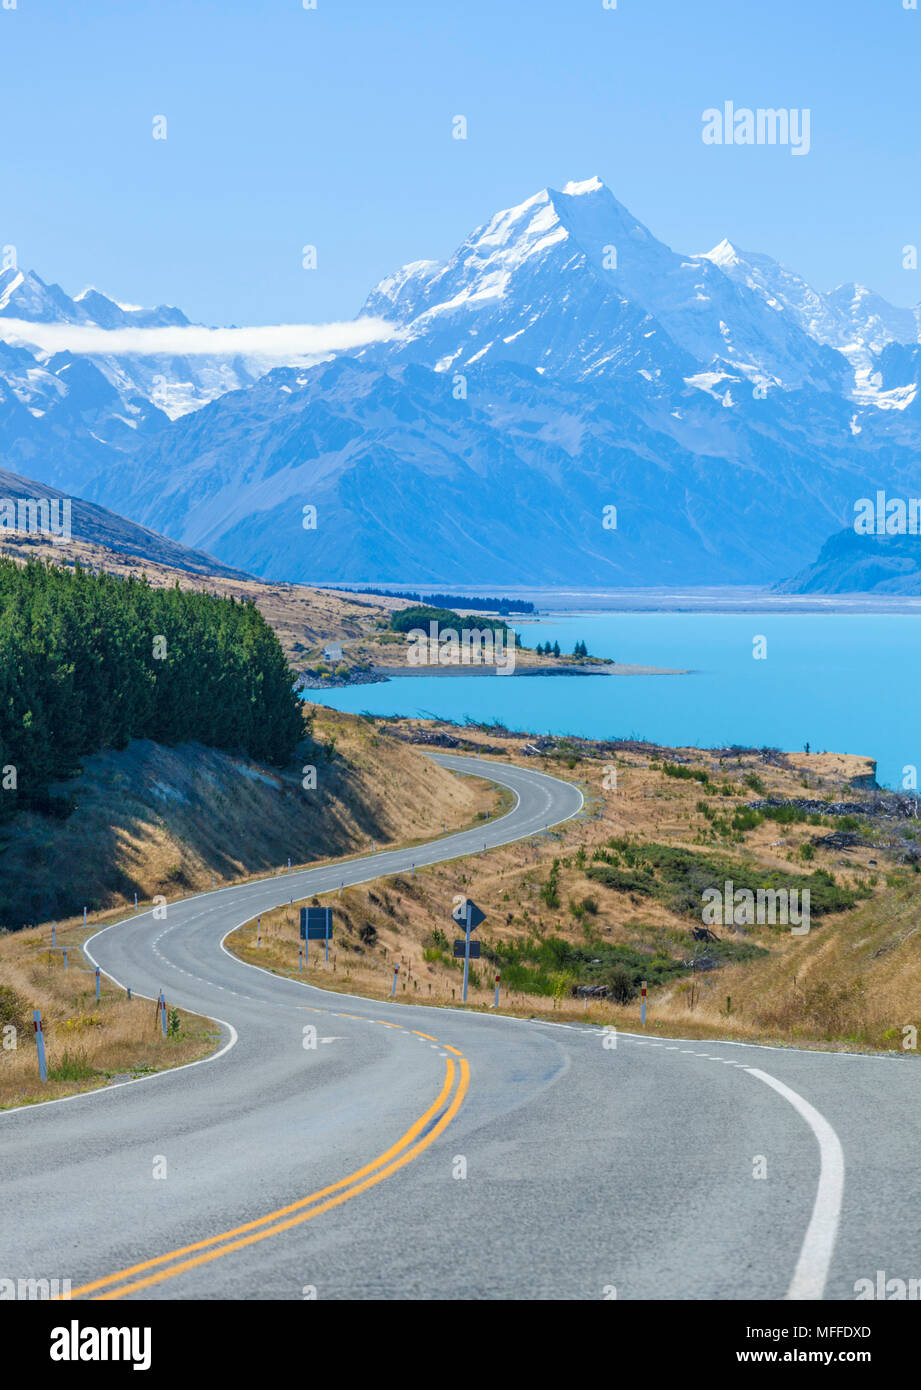 new zealand south island new zealand a winding road with no traffic in mount cook national park by the side of lake pukaki new zealand - Stock Image